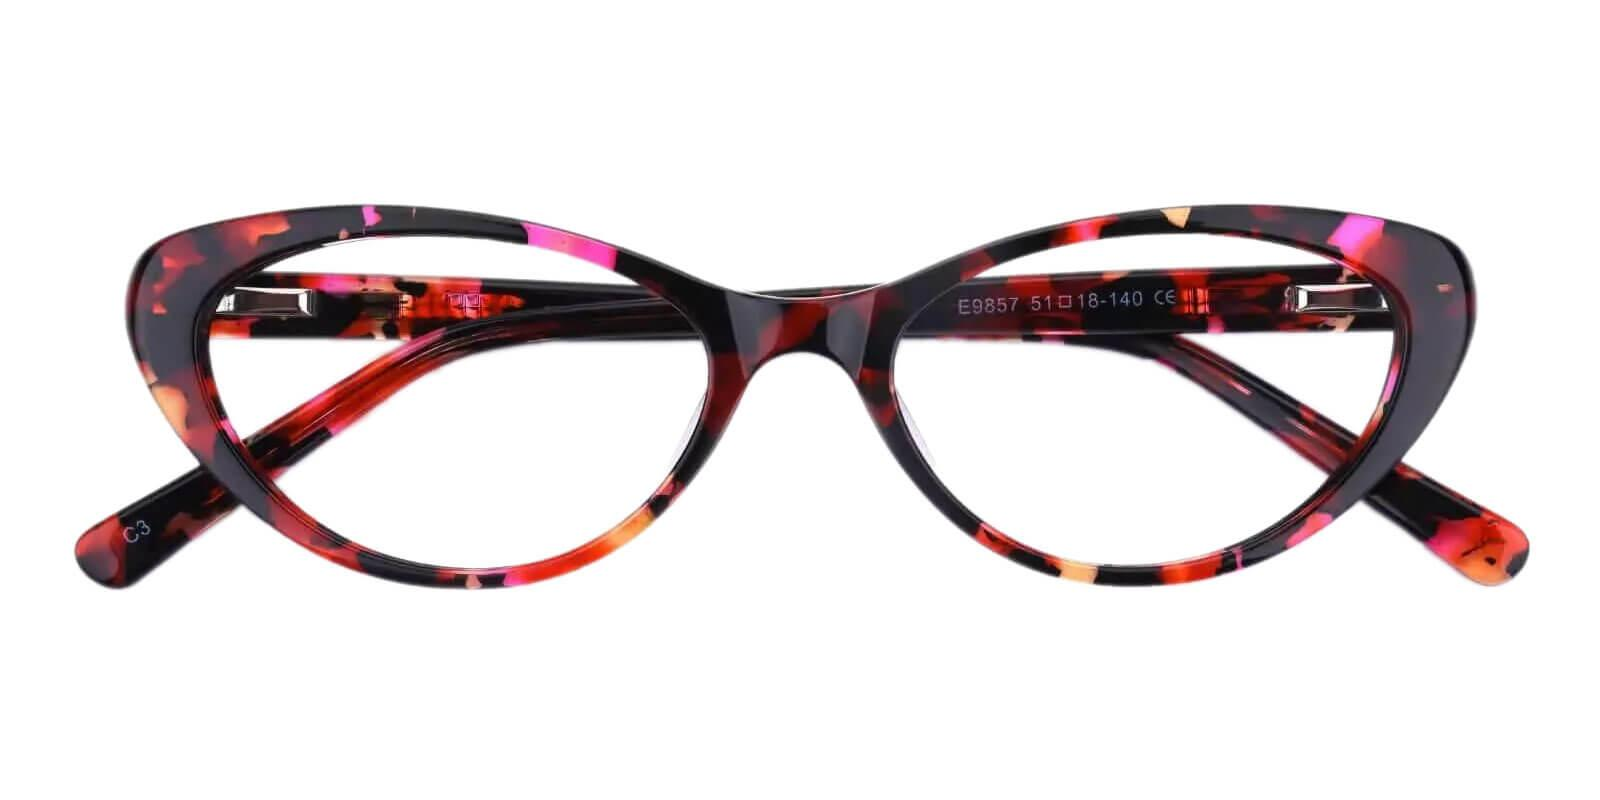 Elena Pattern Acetate Eyeglasses , UniversalBridgeFit Frames from ABBE Glasses